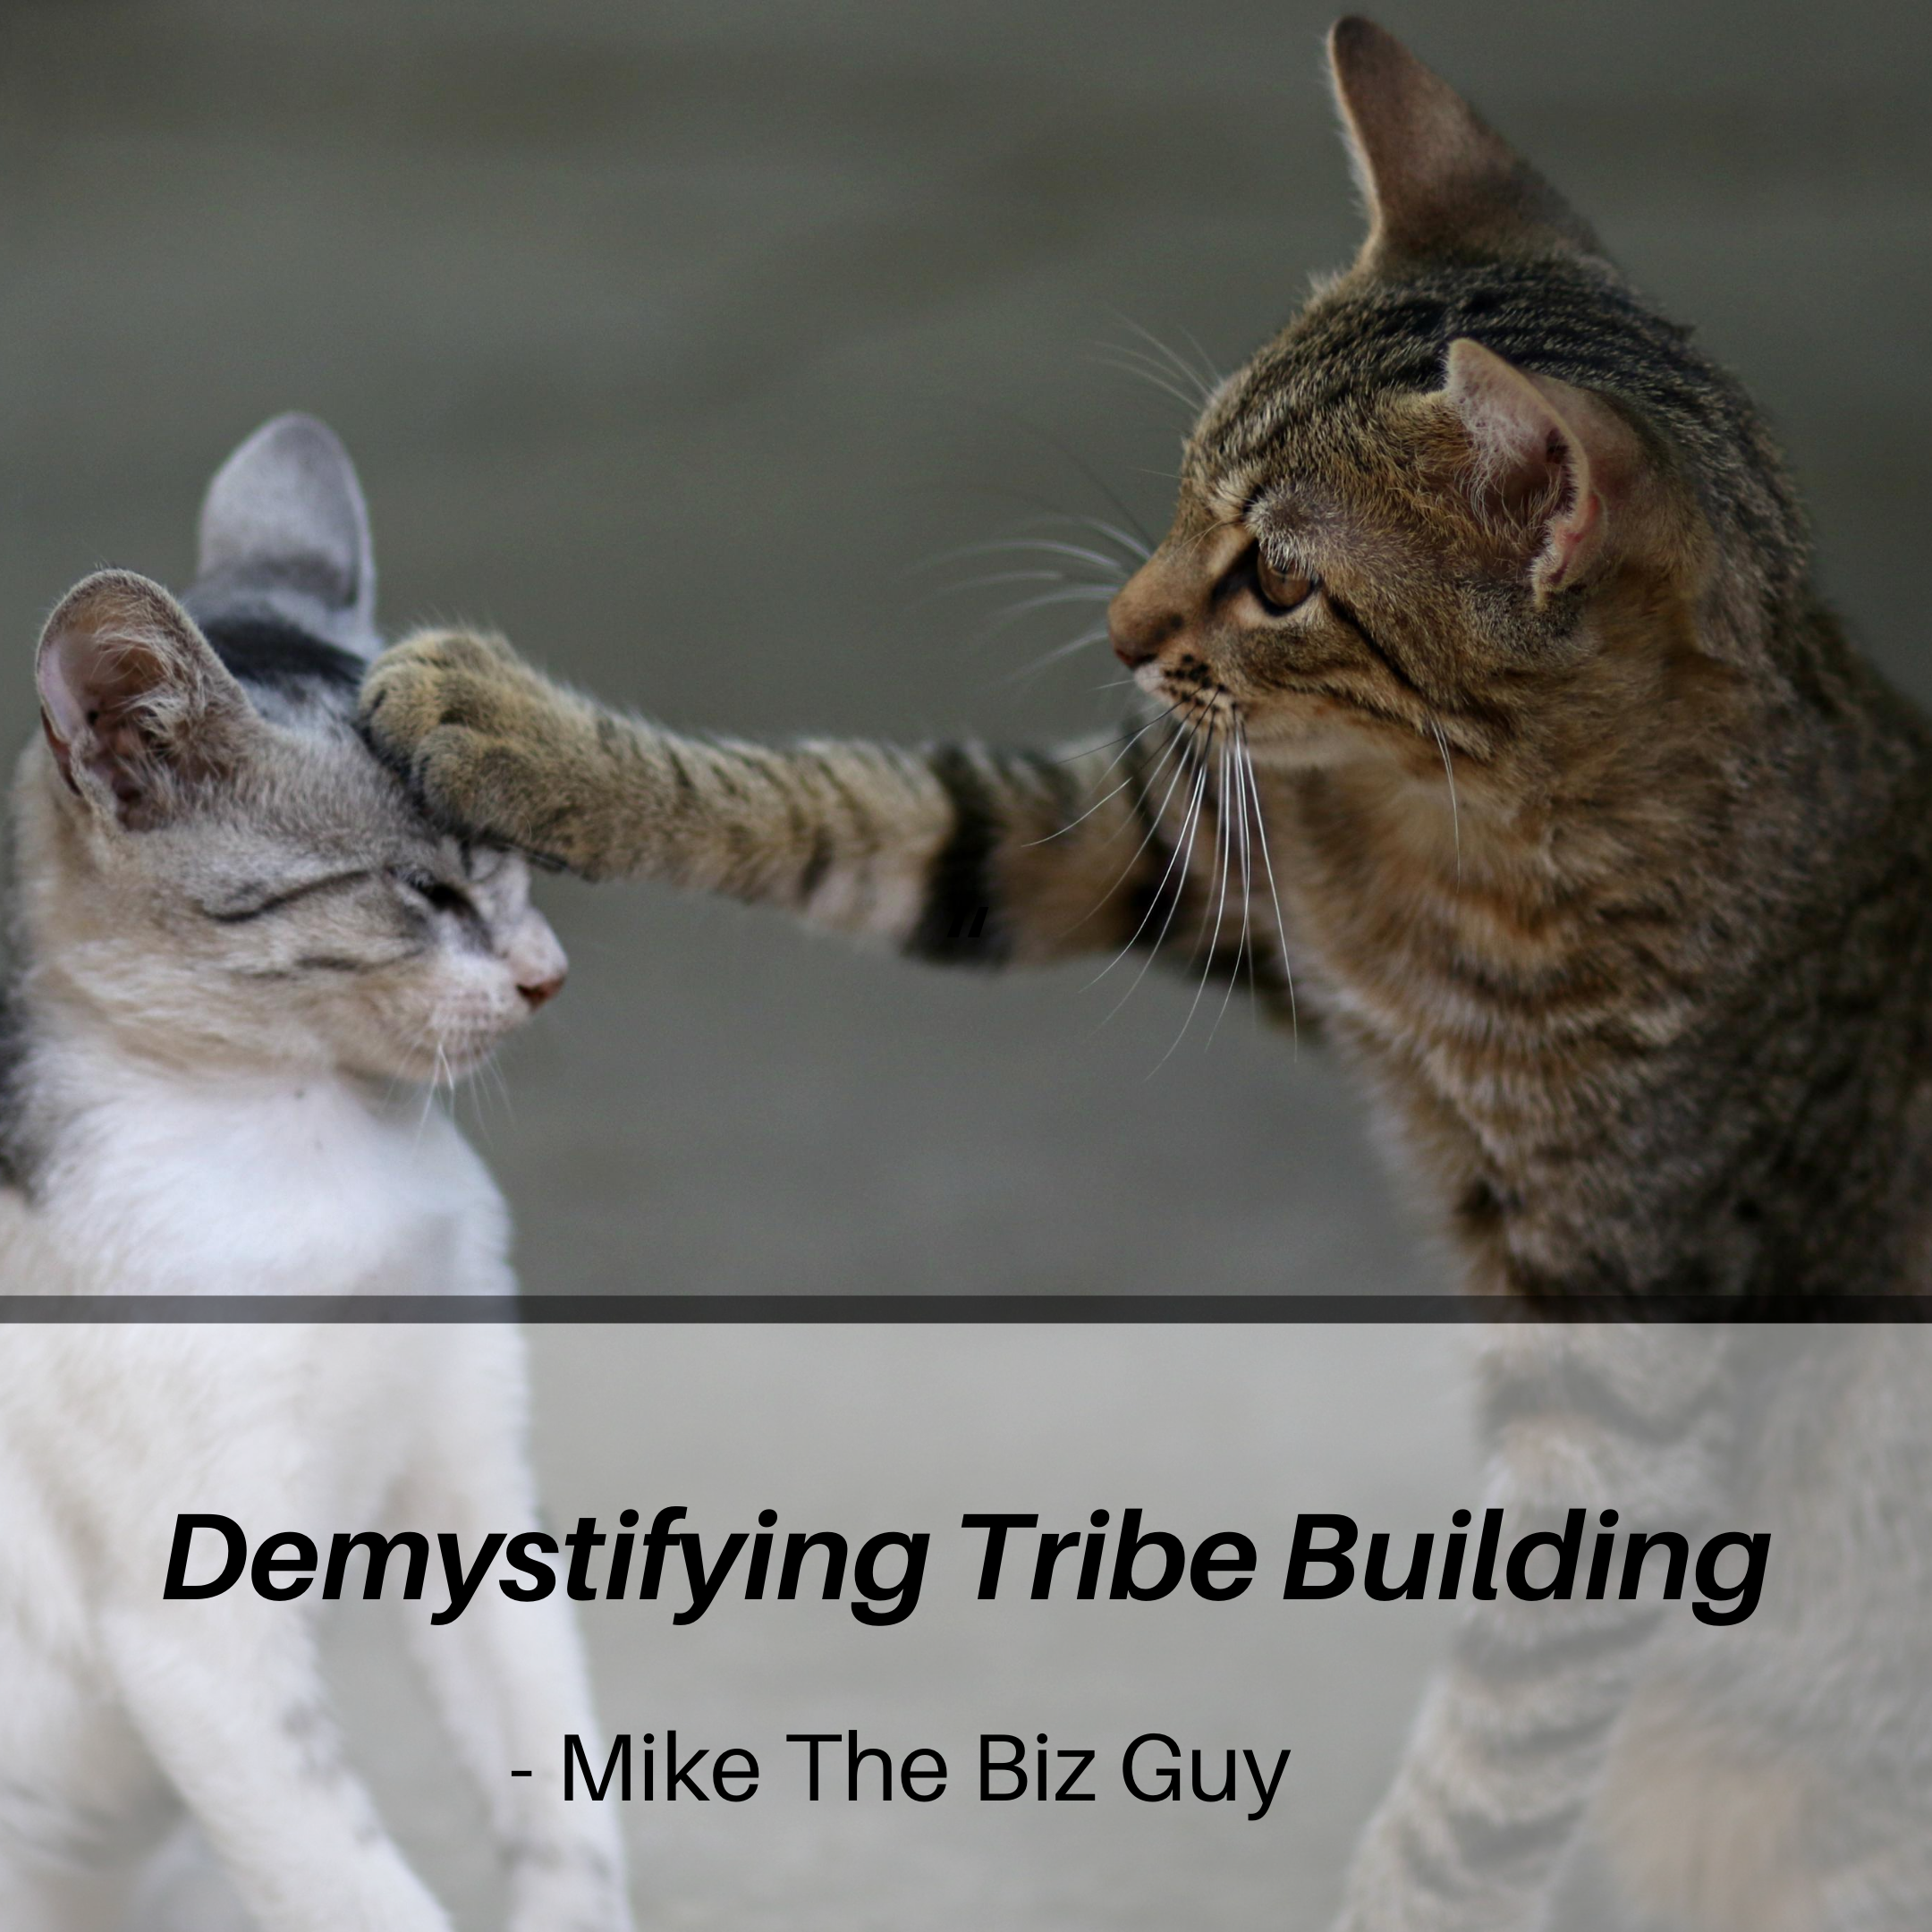 Demystifying Tribe Building - Mike The Biz Guy